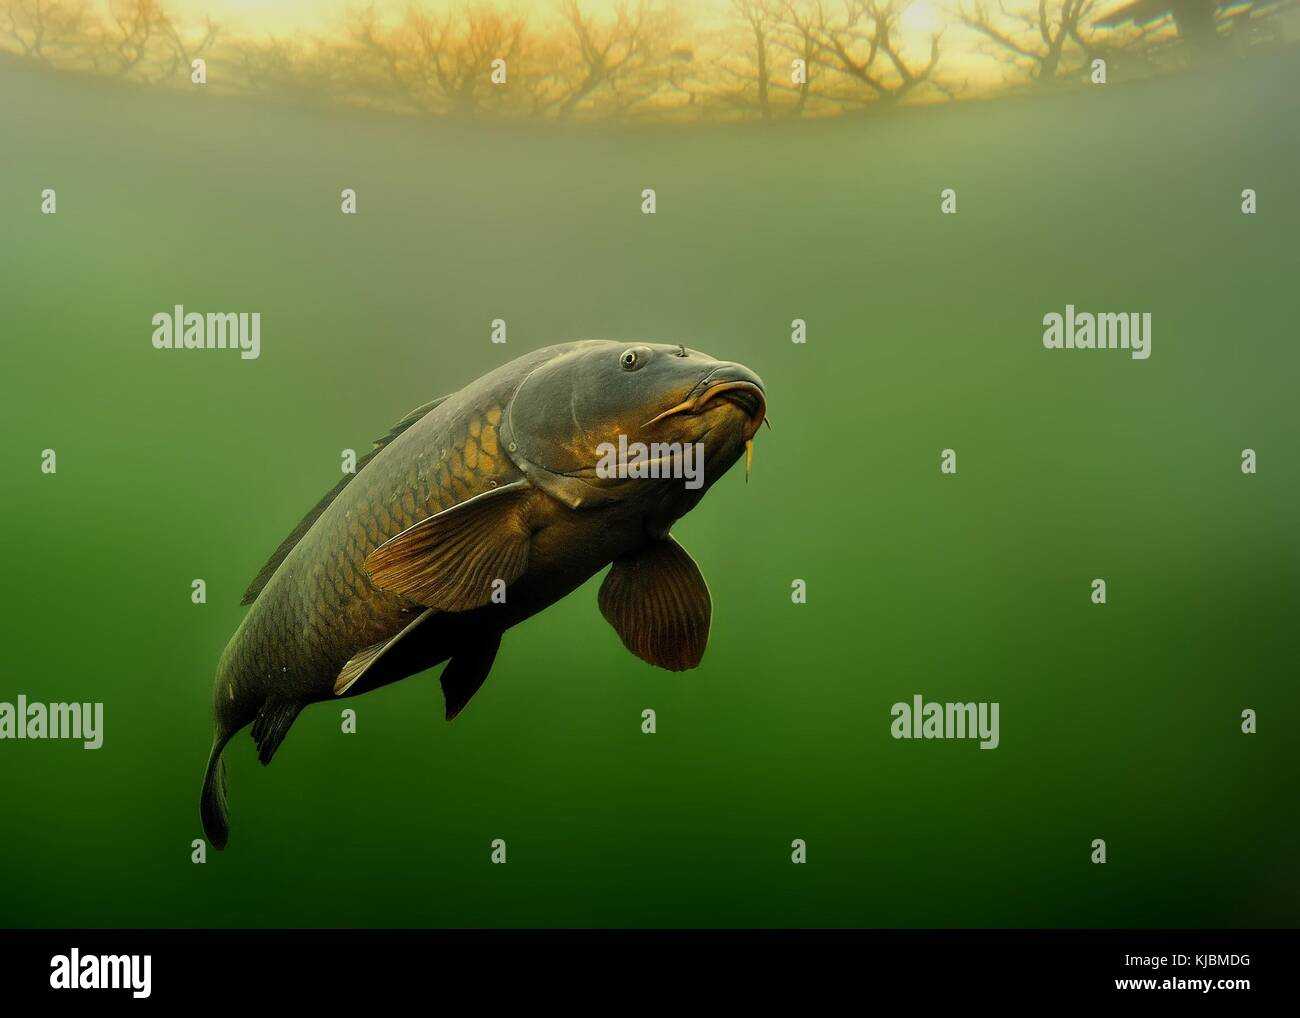 Common Carp - Cyprinus carpio under water with beautiful background. - Stock Image